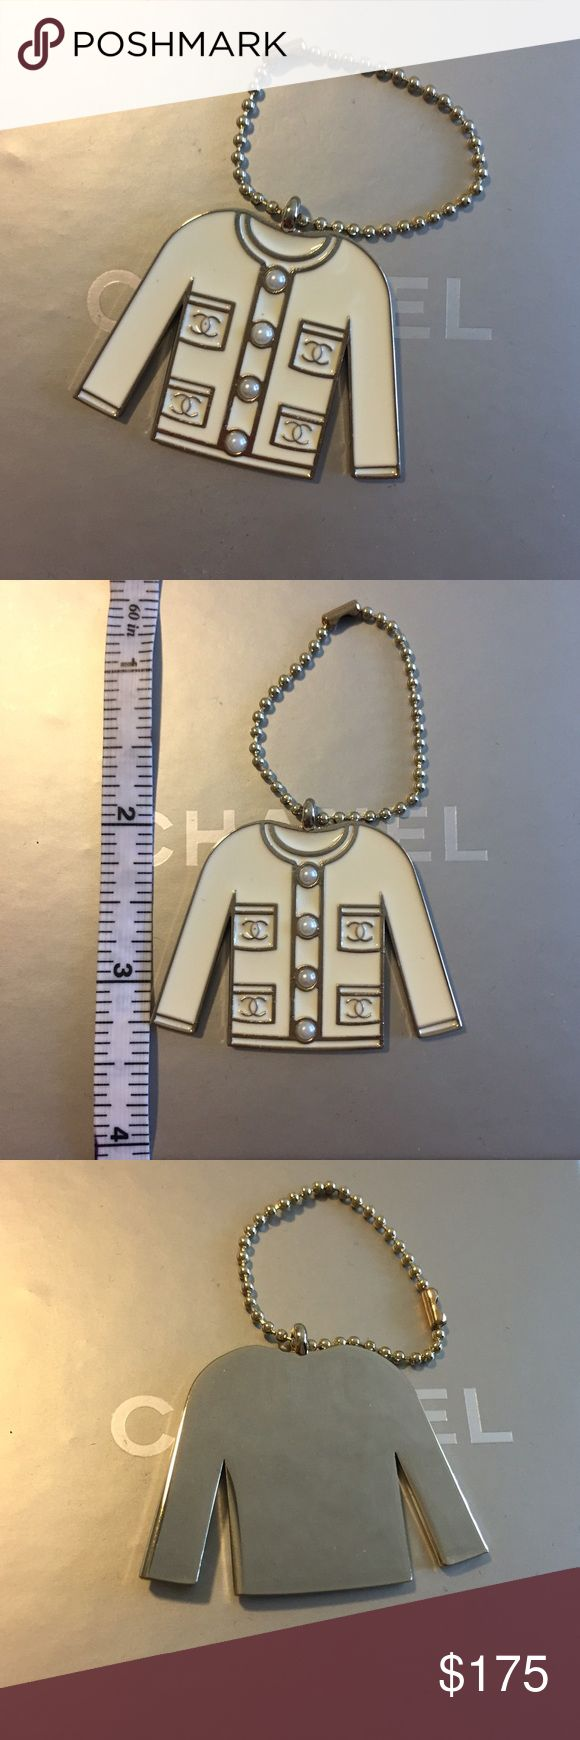 Authentic NEW Chanel cardigan keychain 💥Temporary Price Drop💥Brand new and never used Chanel keychain. The most darling little cream enamel and silver tone classic cardigan or jacket with CC pockets and pearl buttons. On a ball chain. In pristine condition. Perfect to hold you keys together, accessorize on your Chanel bag, or even worn as a charm on a chain. CHANEL Accessories Key & Card Holders